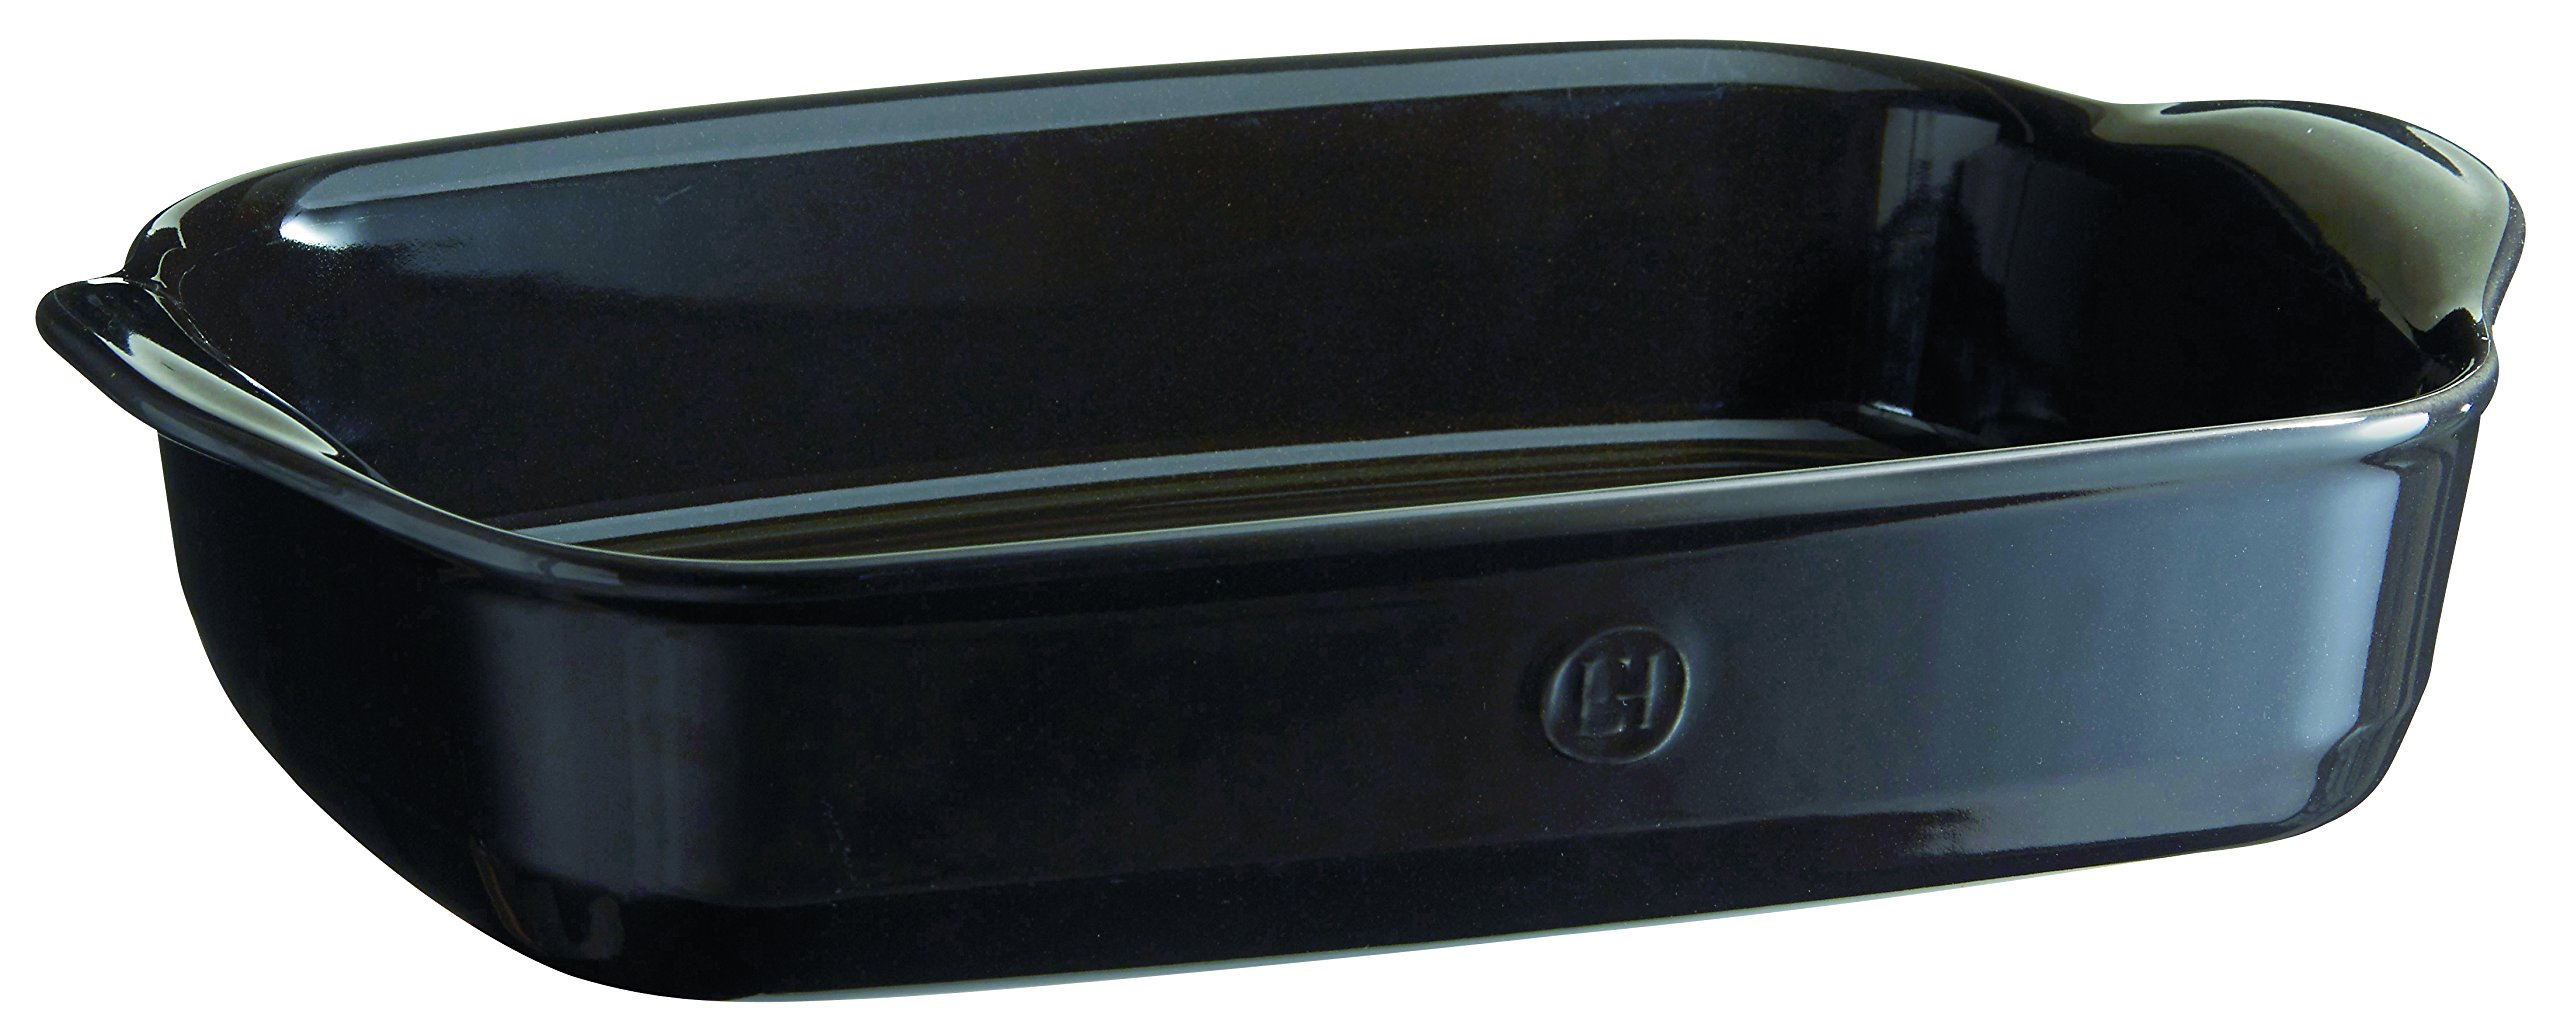 Emile Henry 799652 France Ovenware Ultime Rectangular Baking Dish, 14.2 x 9.1, Charcoal